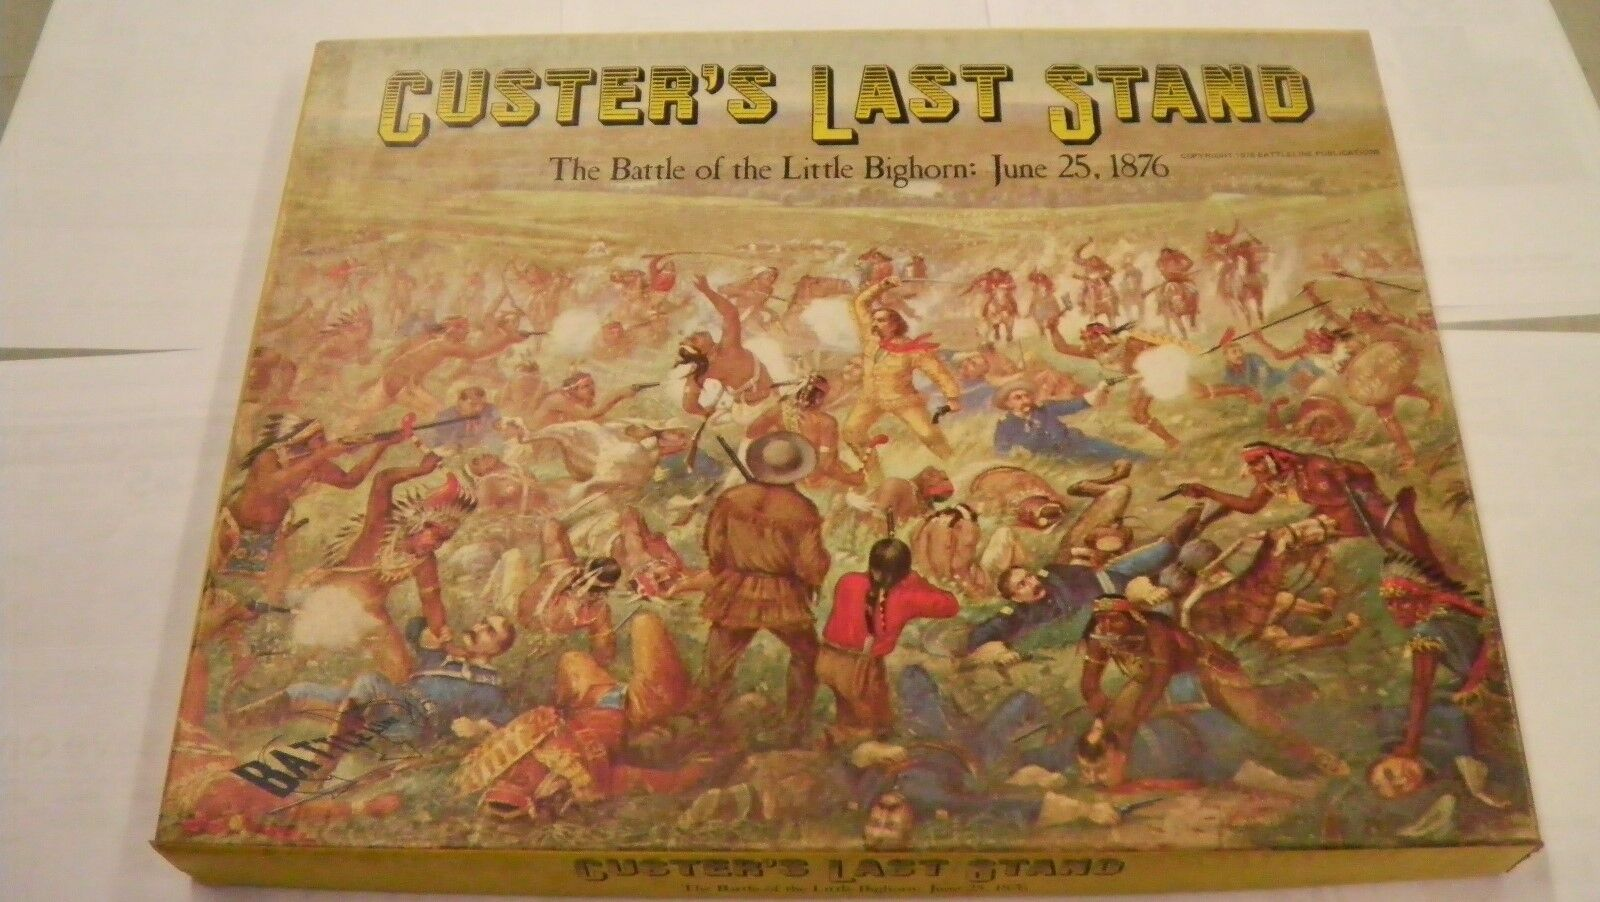 1976 CUSTERS LAST STAND BATTLE BATTLE BATTLE LITTLE BIGHORN JUNE 25 1876 COMPLETE WAR GAME 6c3b91